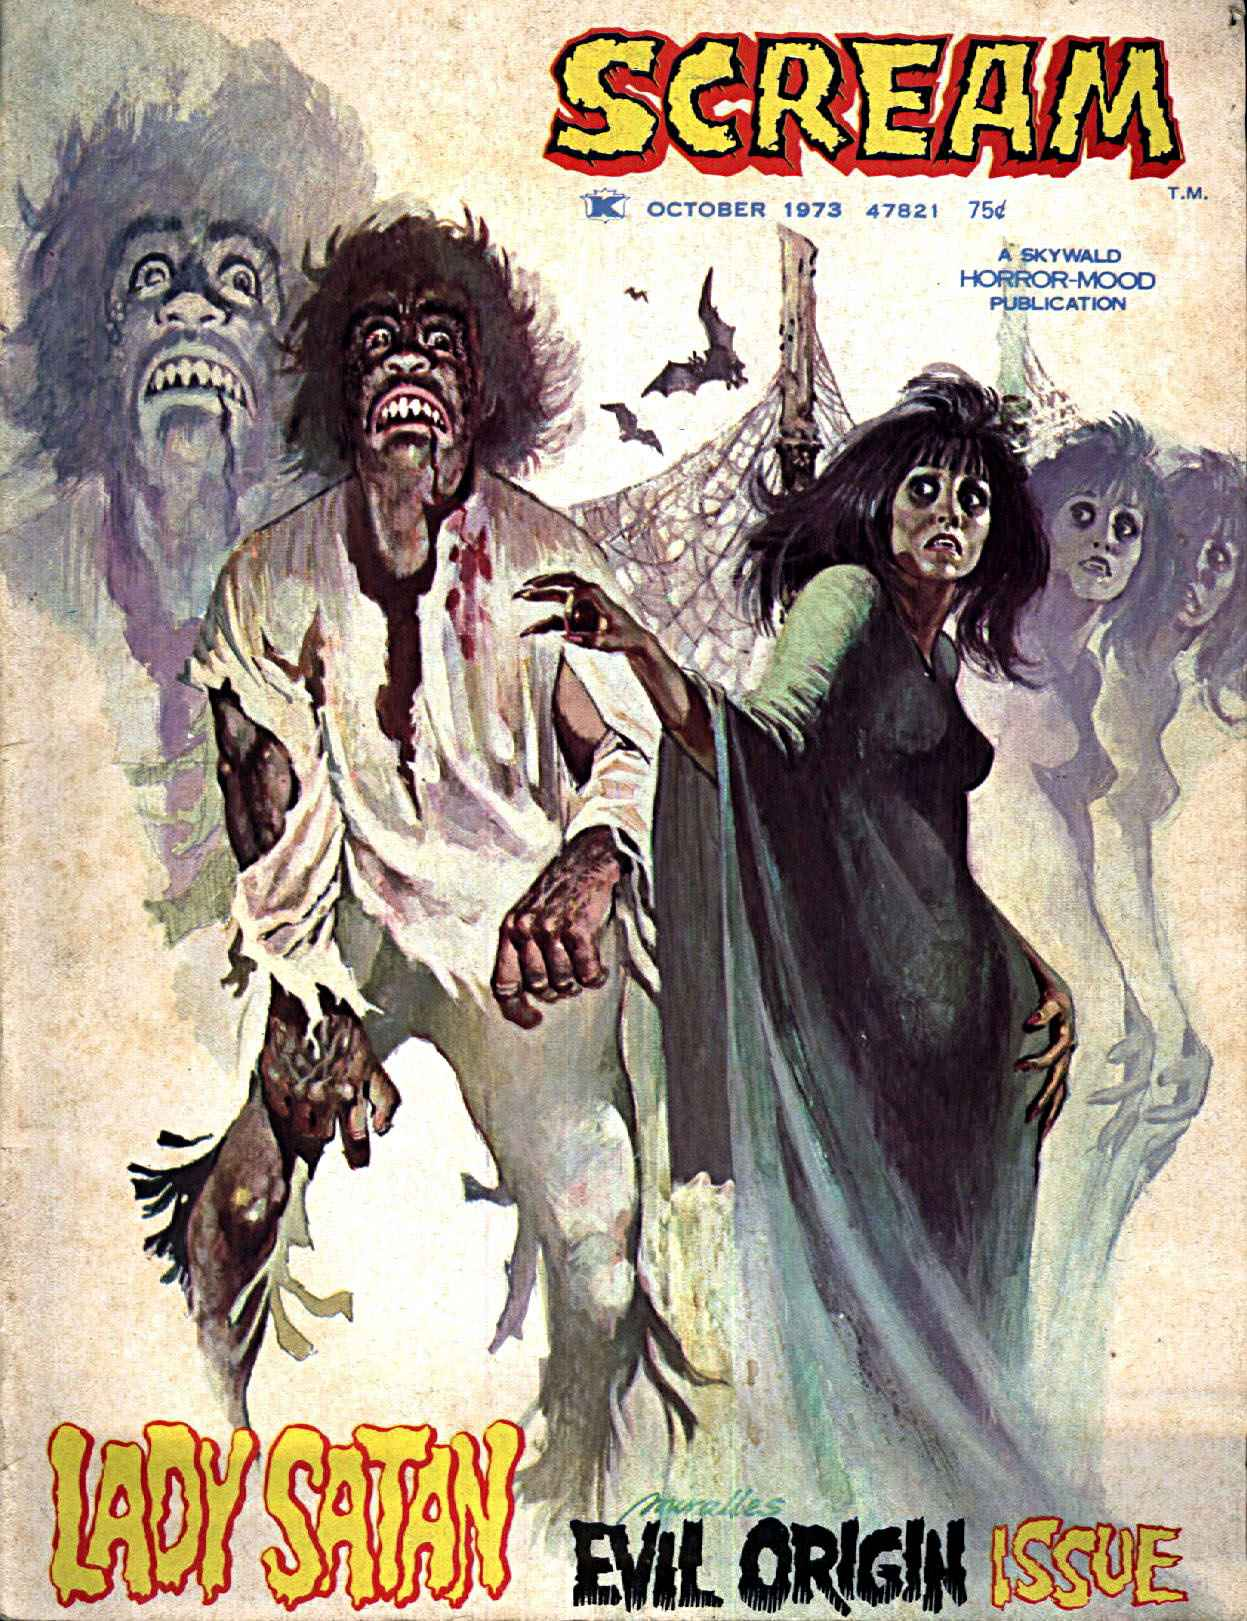 Scream Magazine, Issue 02, October 1973